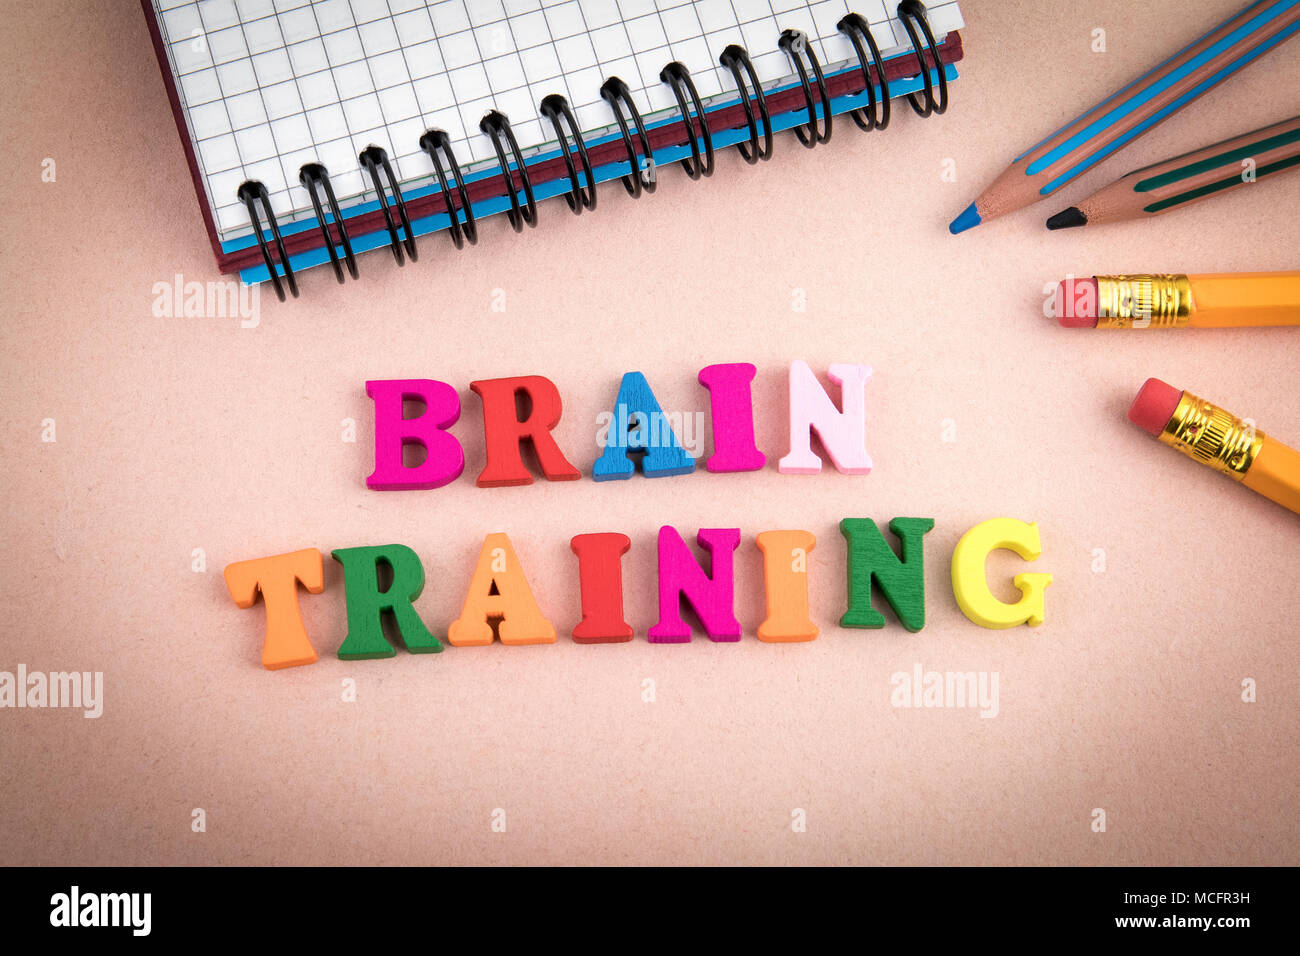 Brain Training. Wooden letters on the office desk - Stock Image